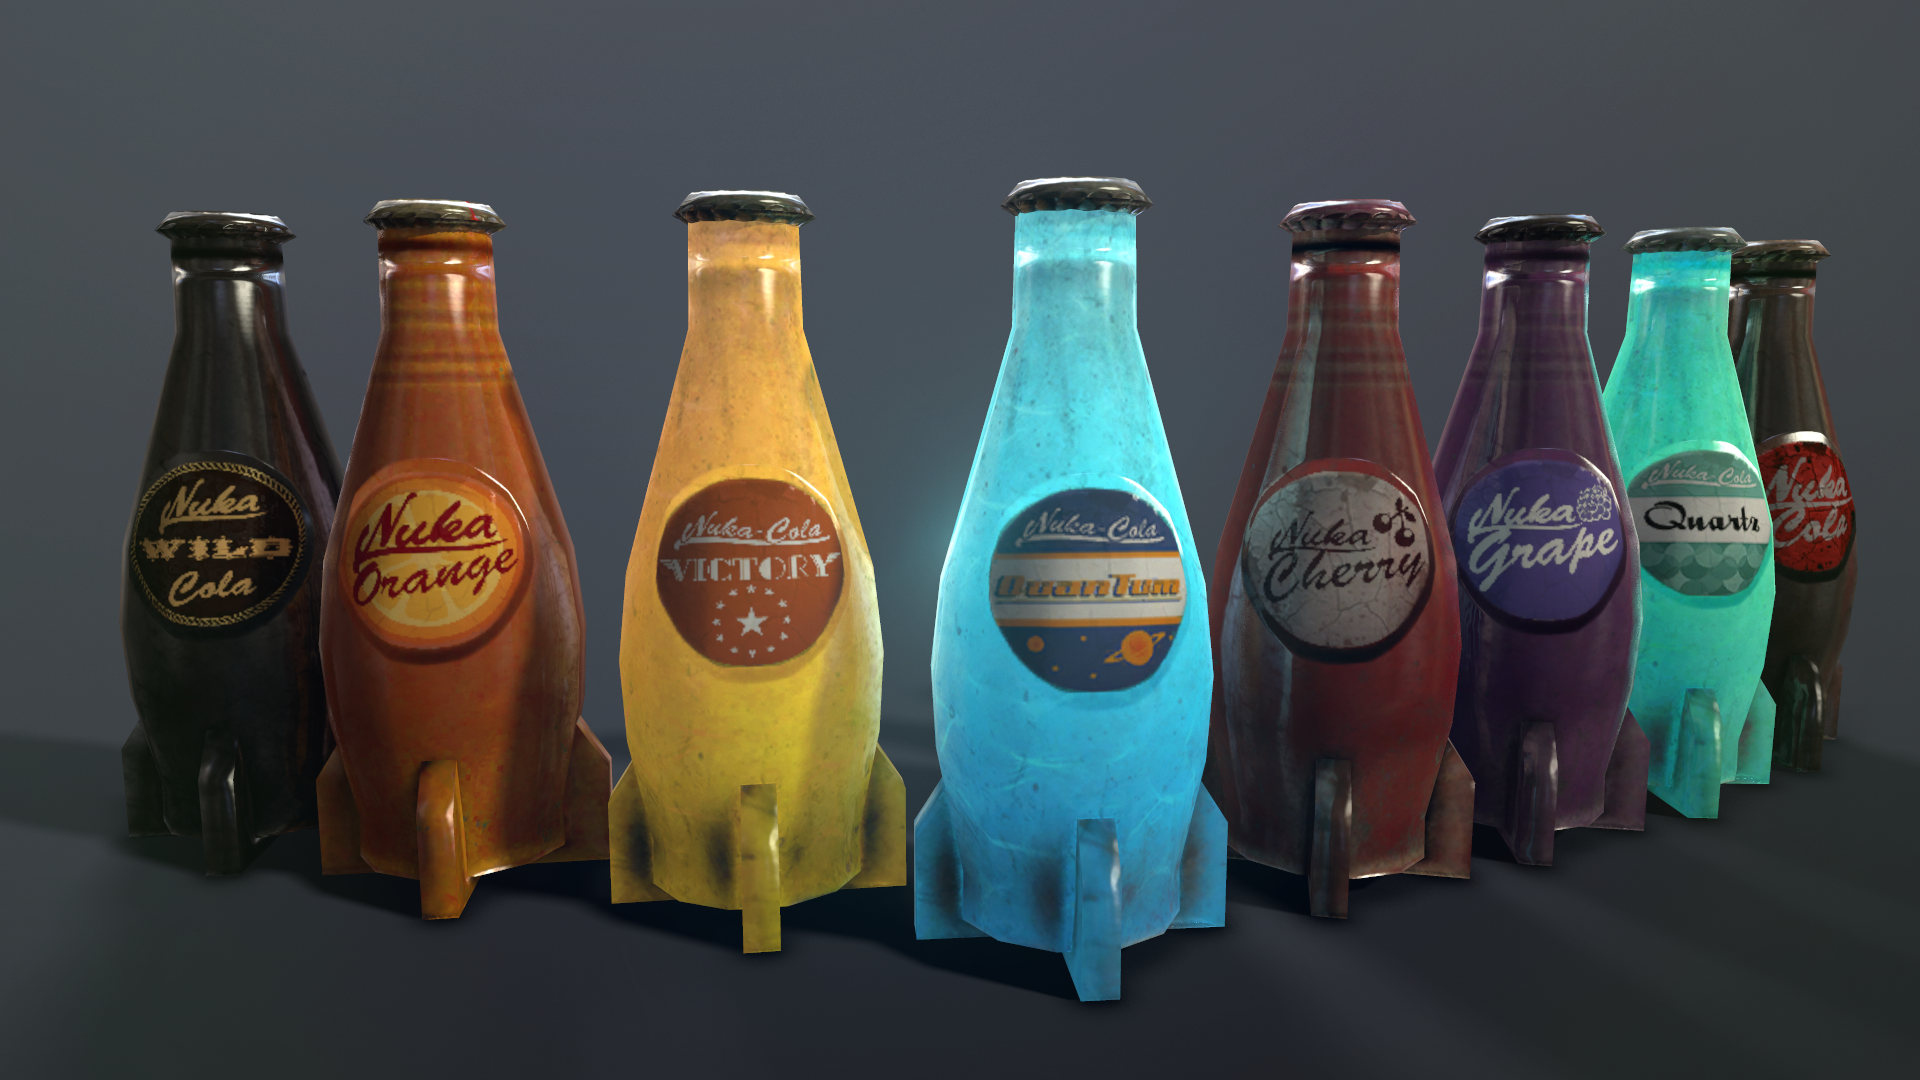 Nuka Cola Bottle Retexture And F4nv Vending Machine At Fallout 4